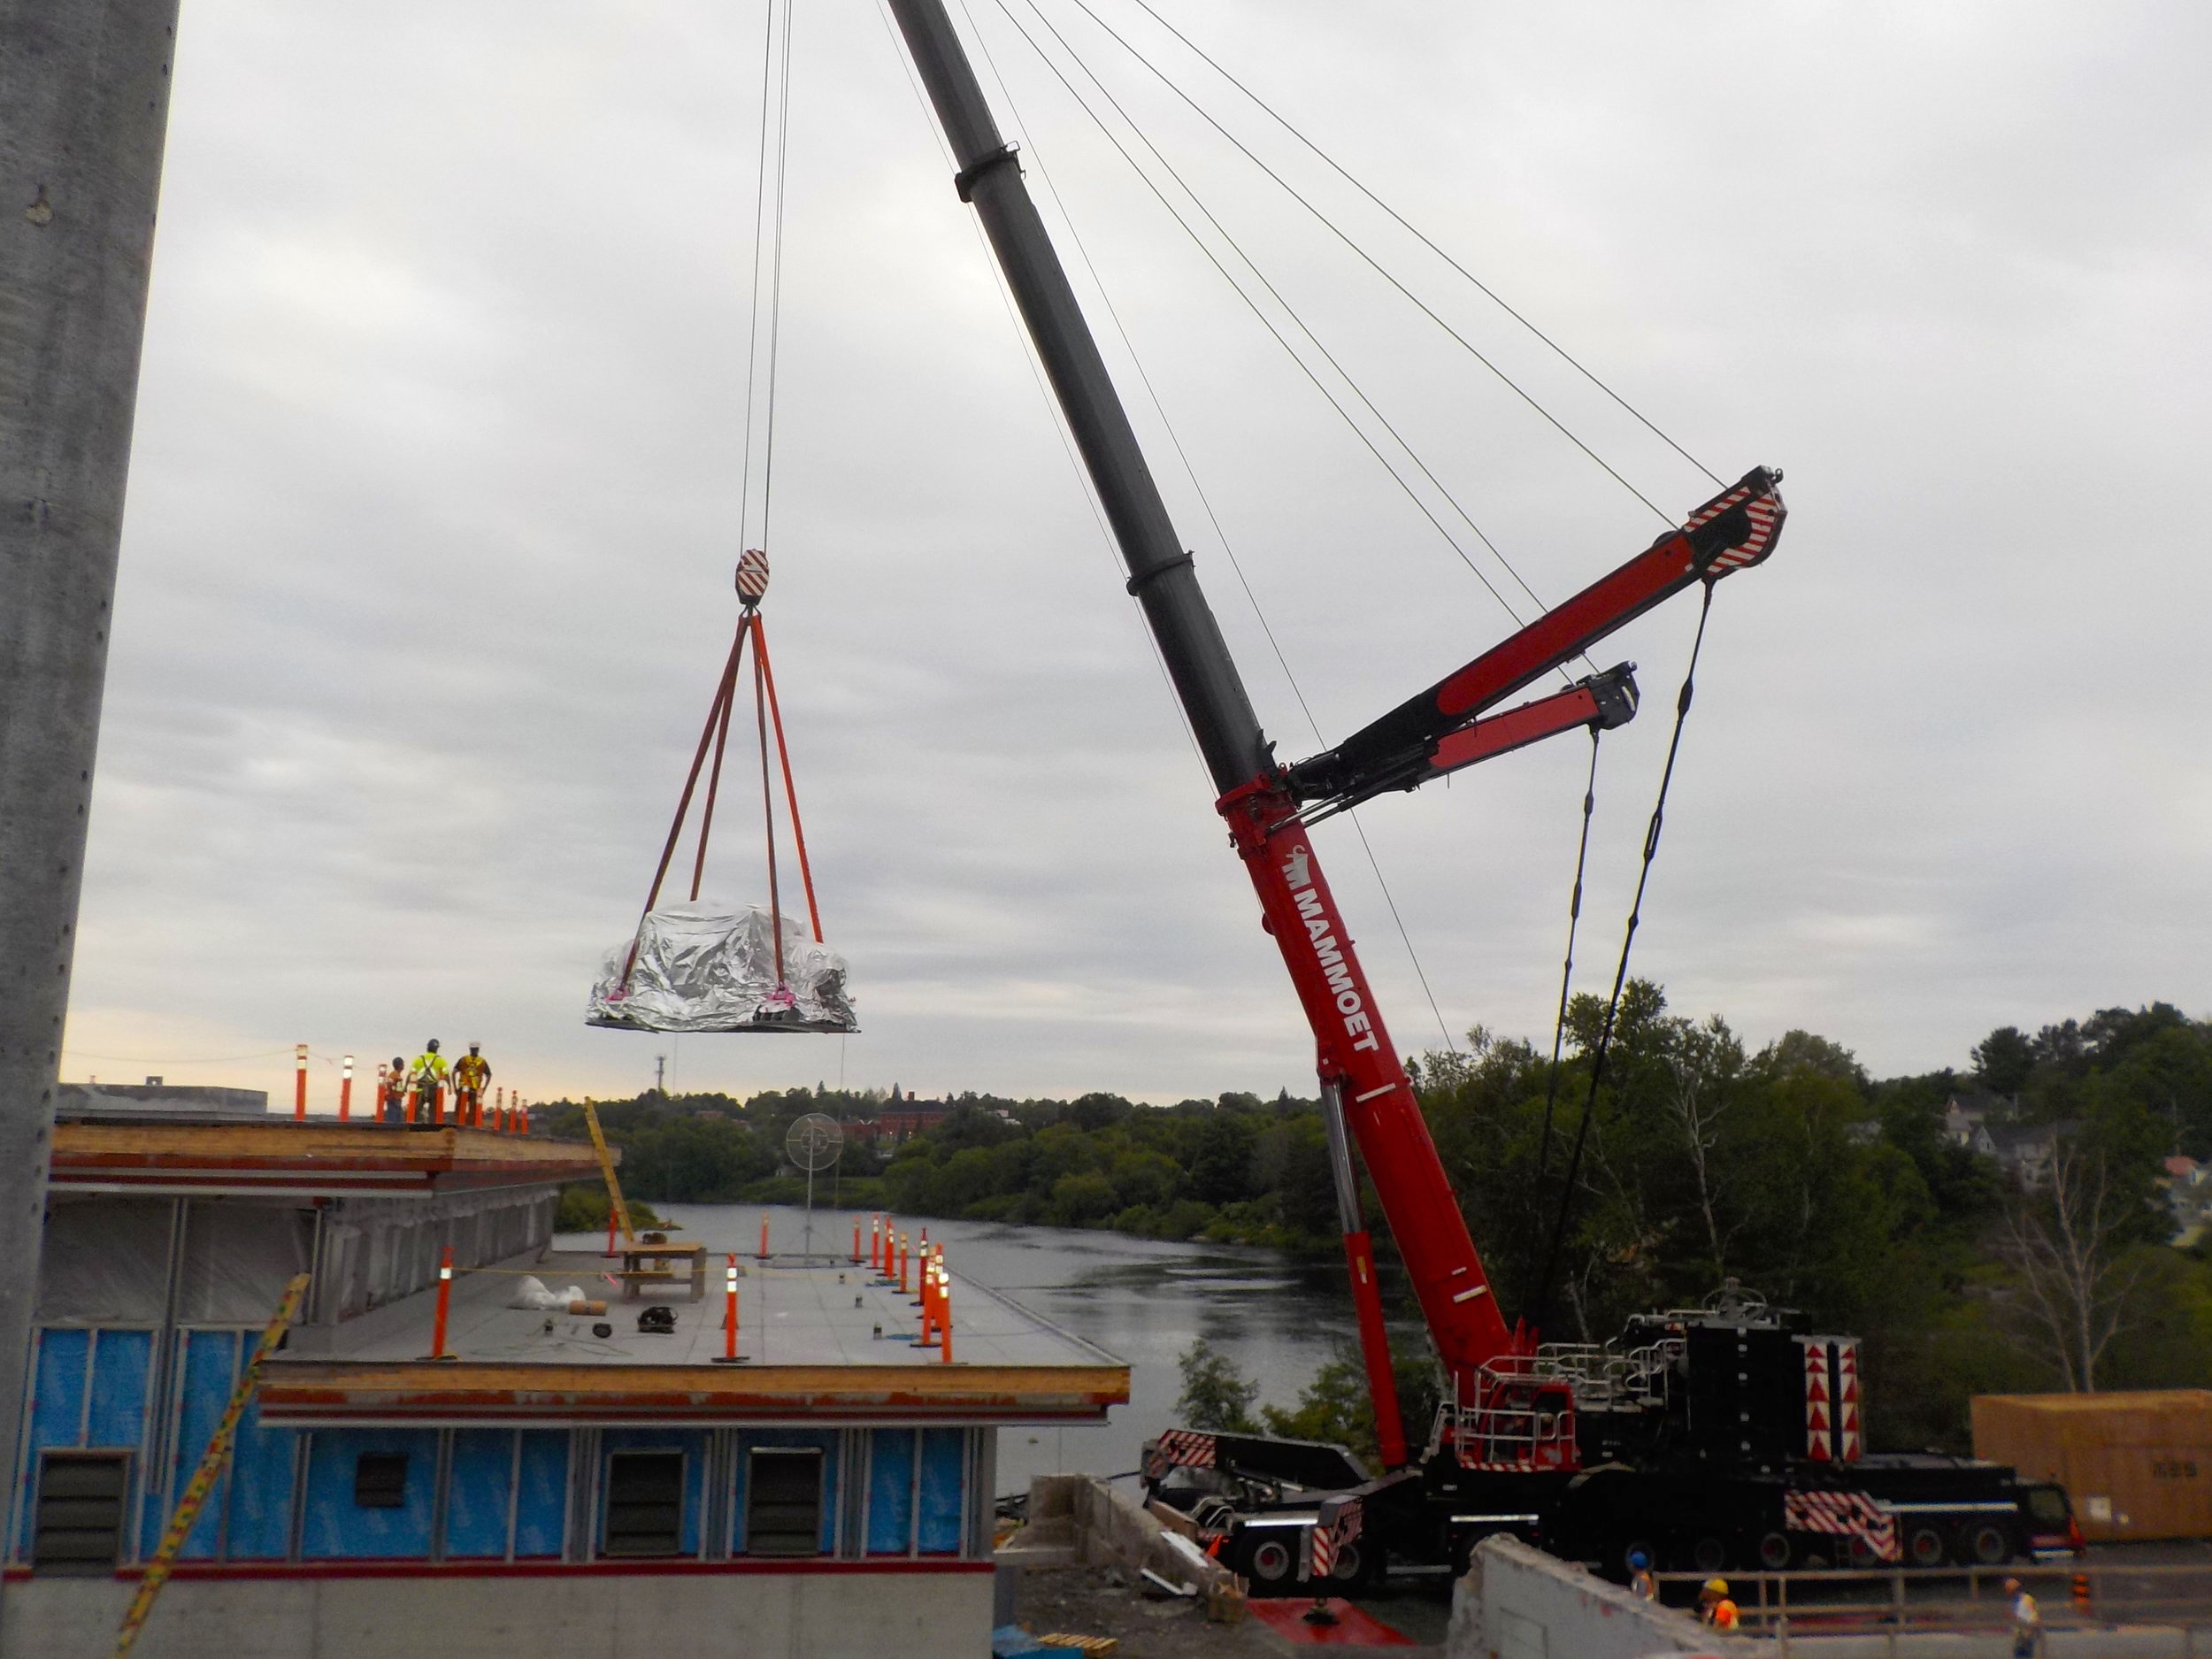 - To hoist the massive 160,000-pound generator assembly with a single lift meant bringing an 850-tonne crane to the job site.